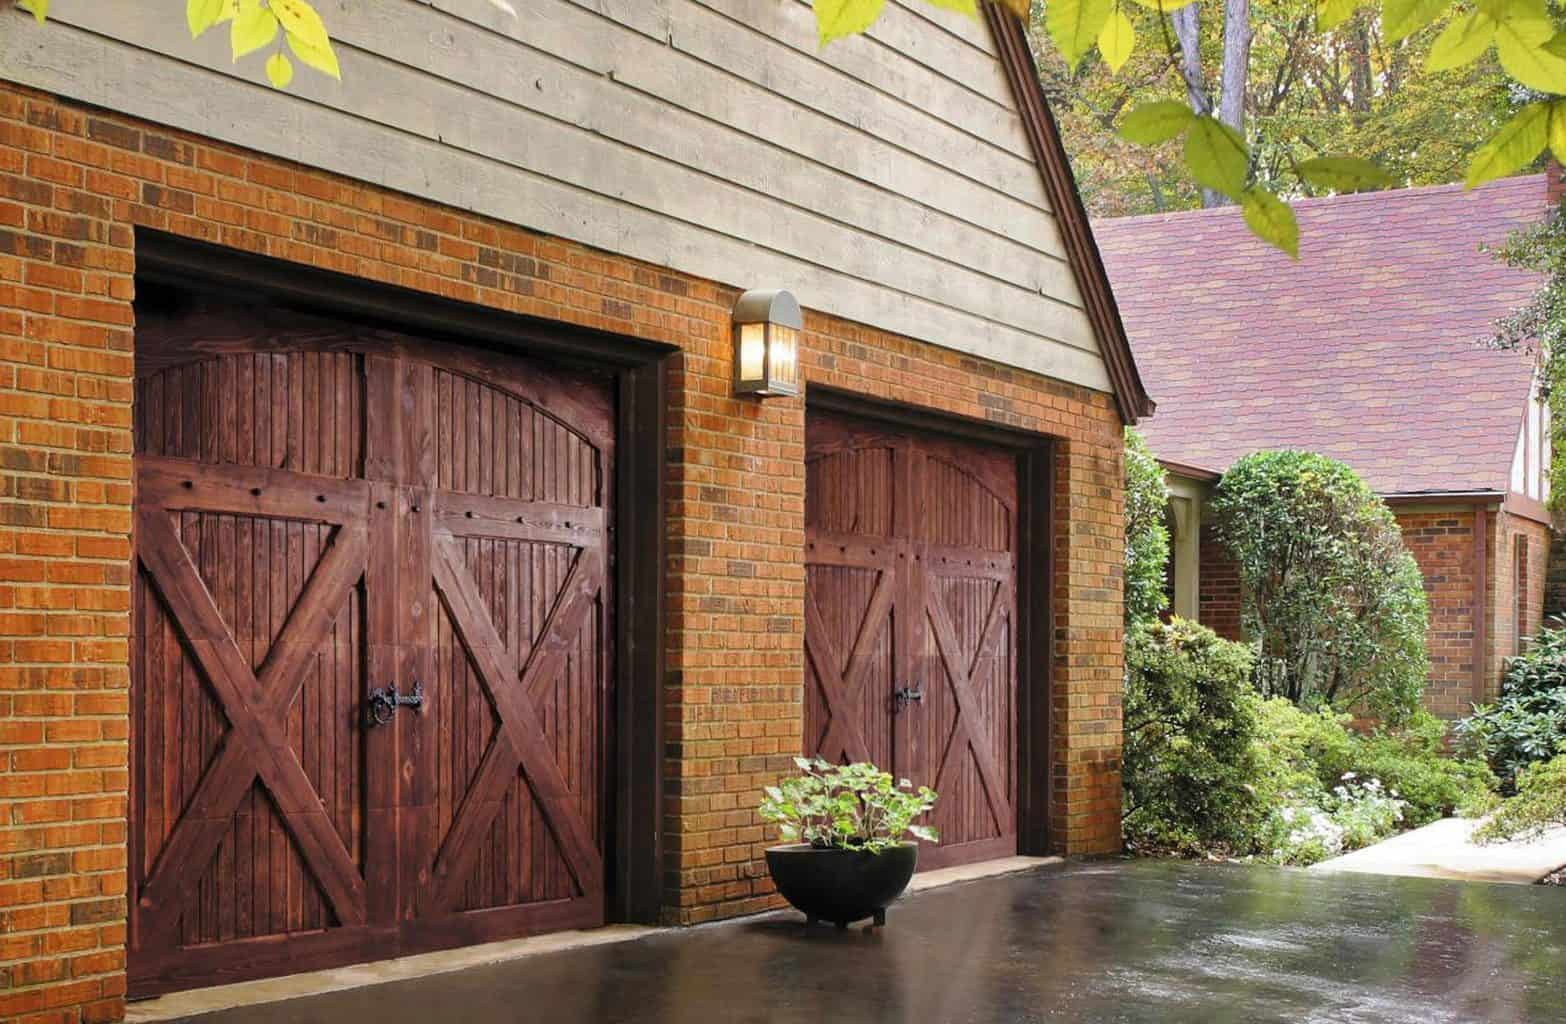 Old world style garage door with vertical lats and cross bars